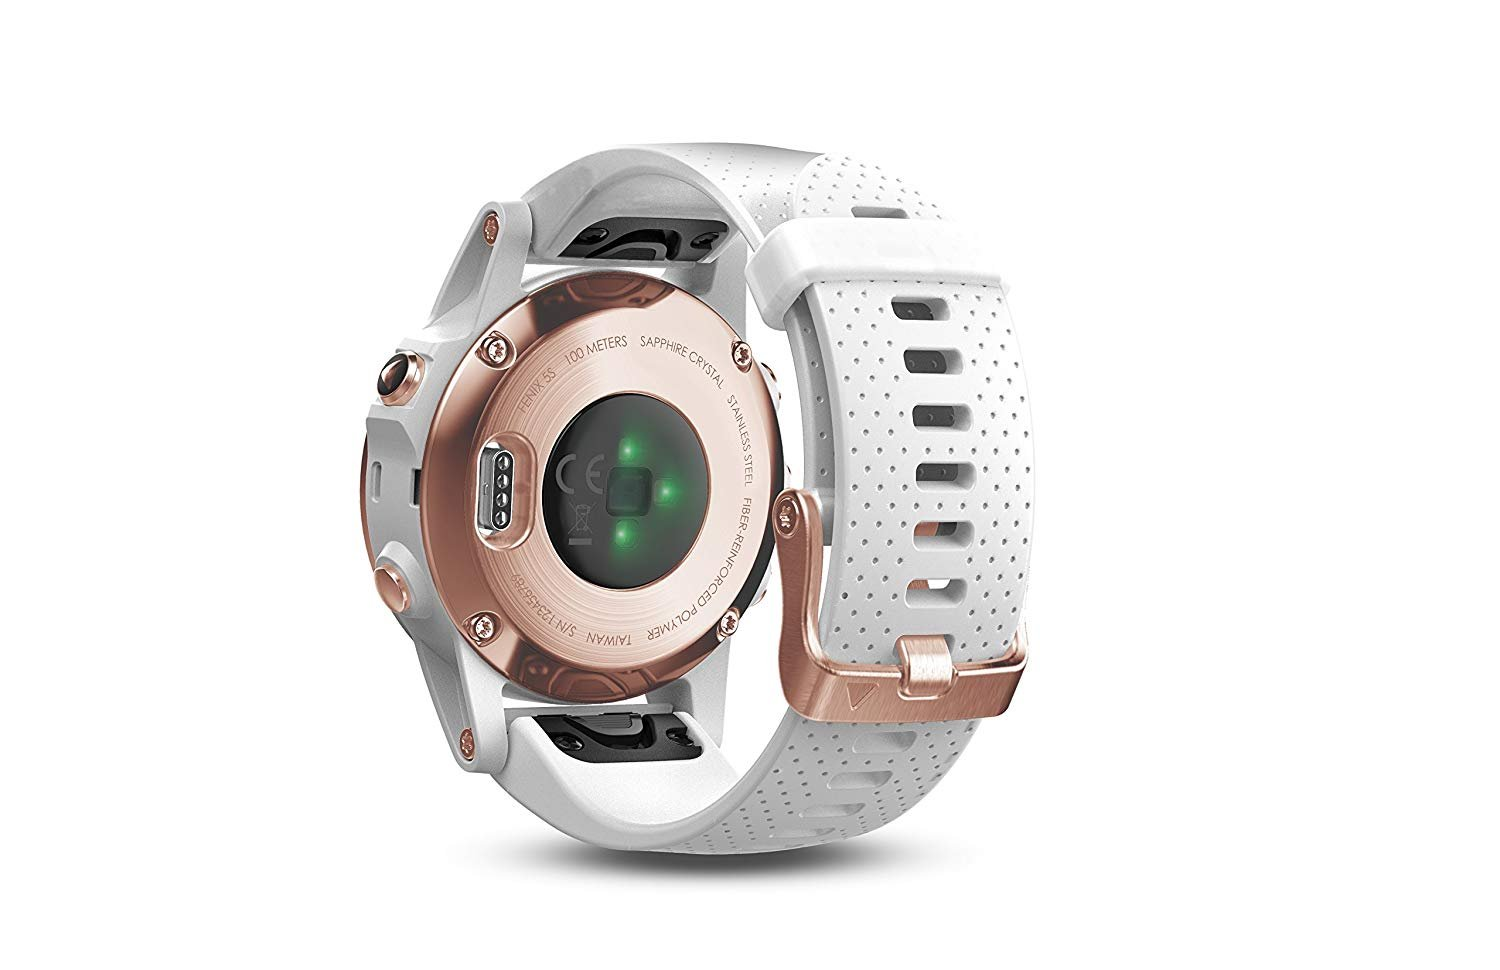 Garmin Fenix 5S - Sapphire, (Rose Gold/White Band) Bundle with PowerBank + USB Car Charger + USB Wall Charger (4 Items) by E Zee Electronics (Image #7)